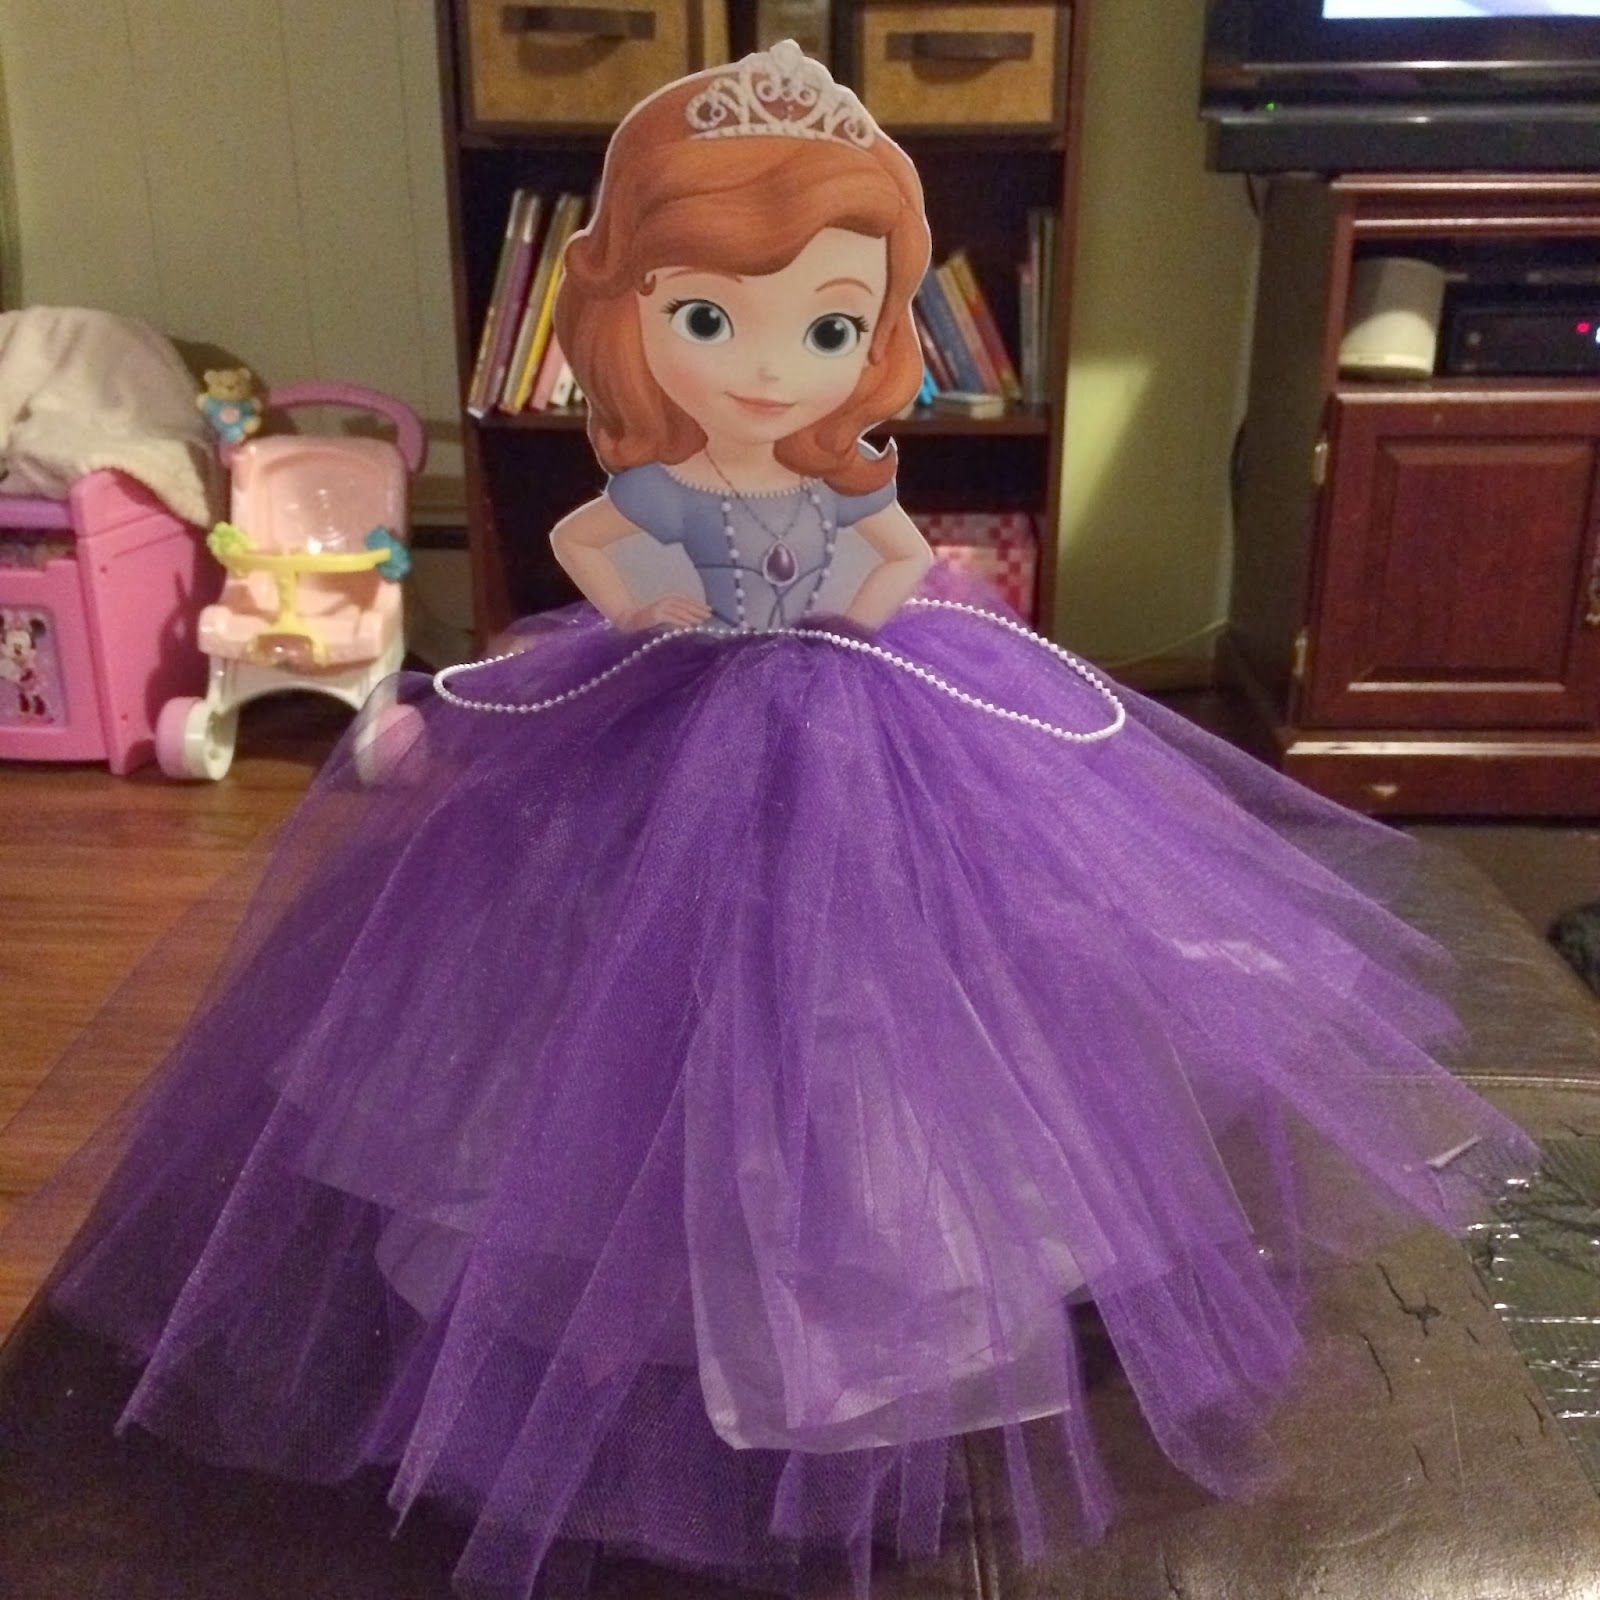 My life with Evie: More Sofia crafts! Sofia the first party ...